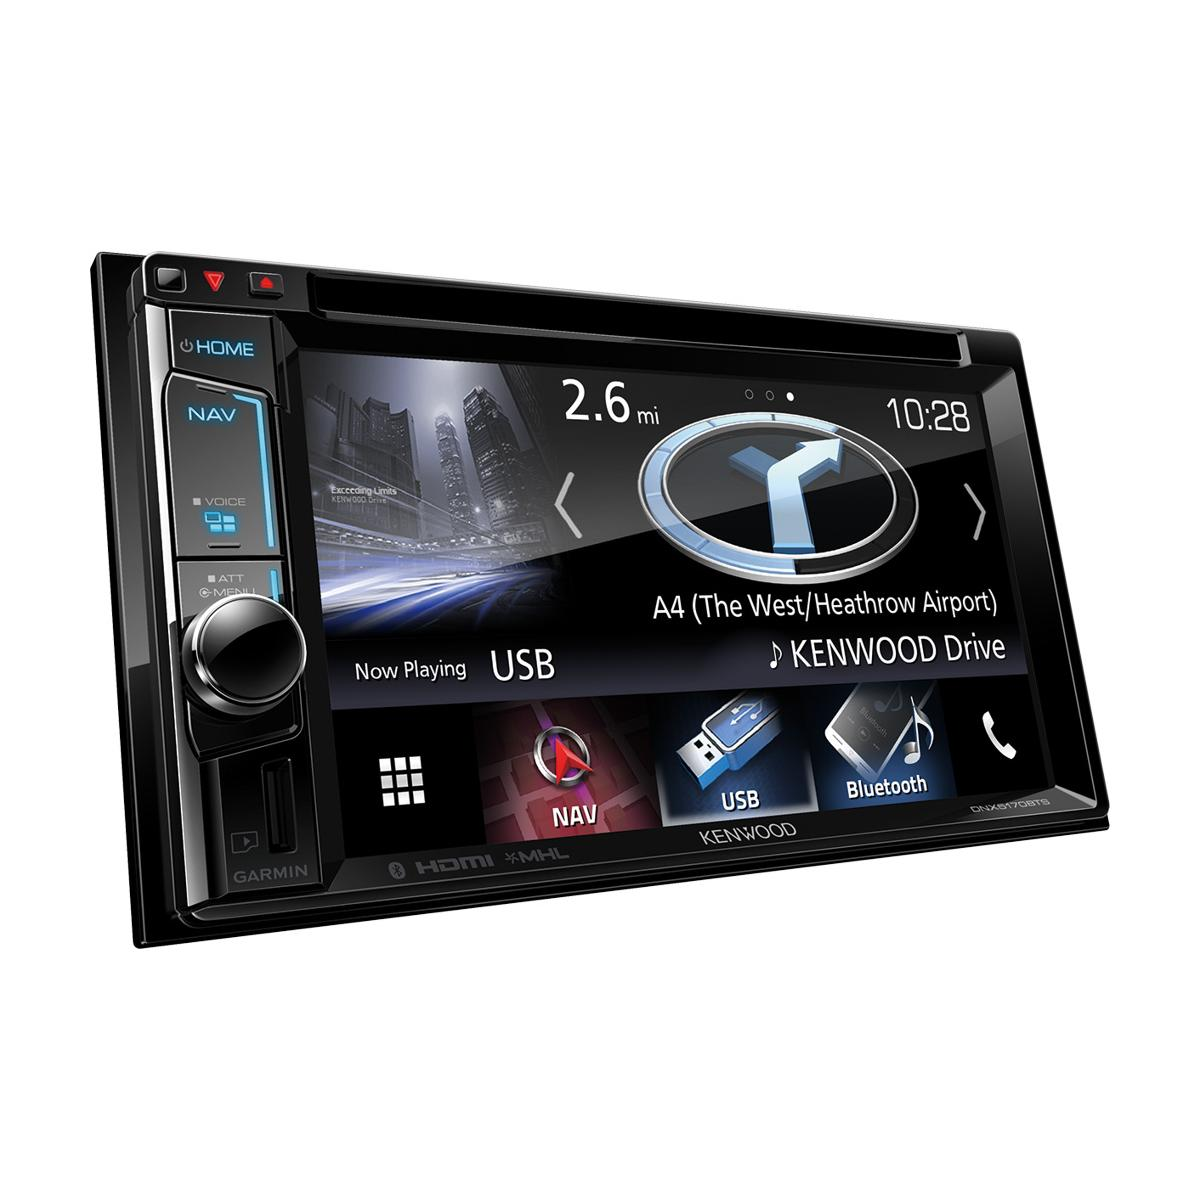 In Car Sat Nav Kenwood Car Audio DNX-5170BTS 1